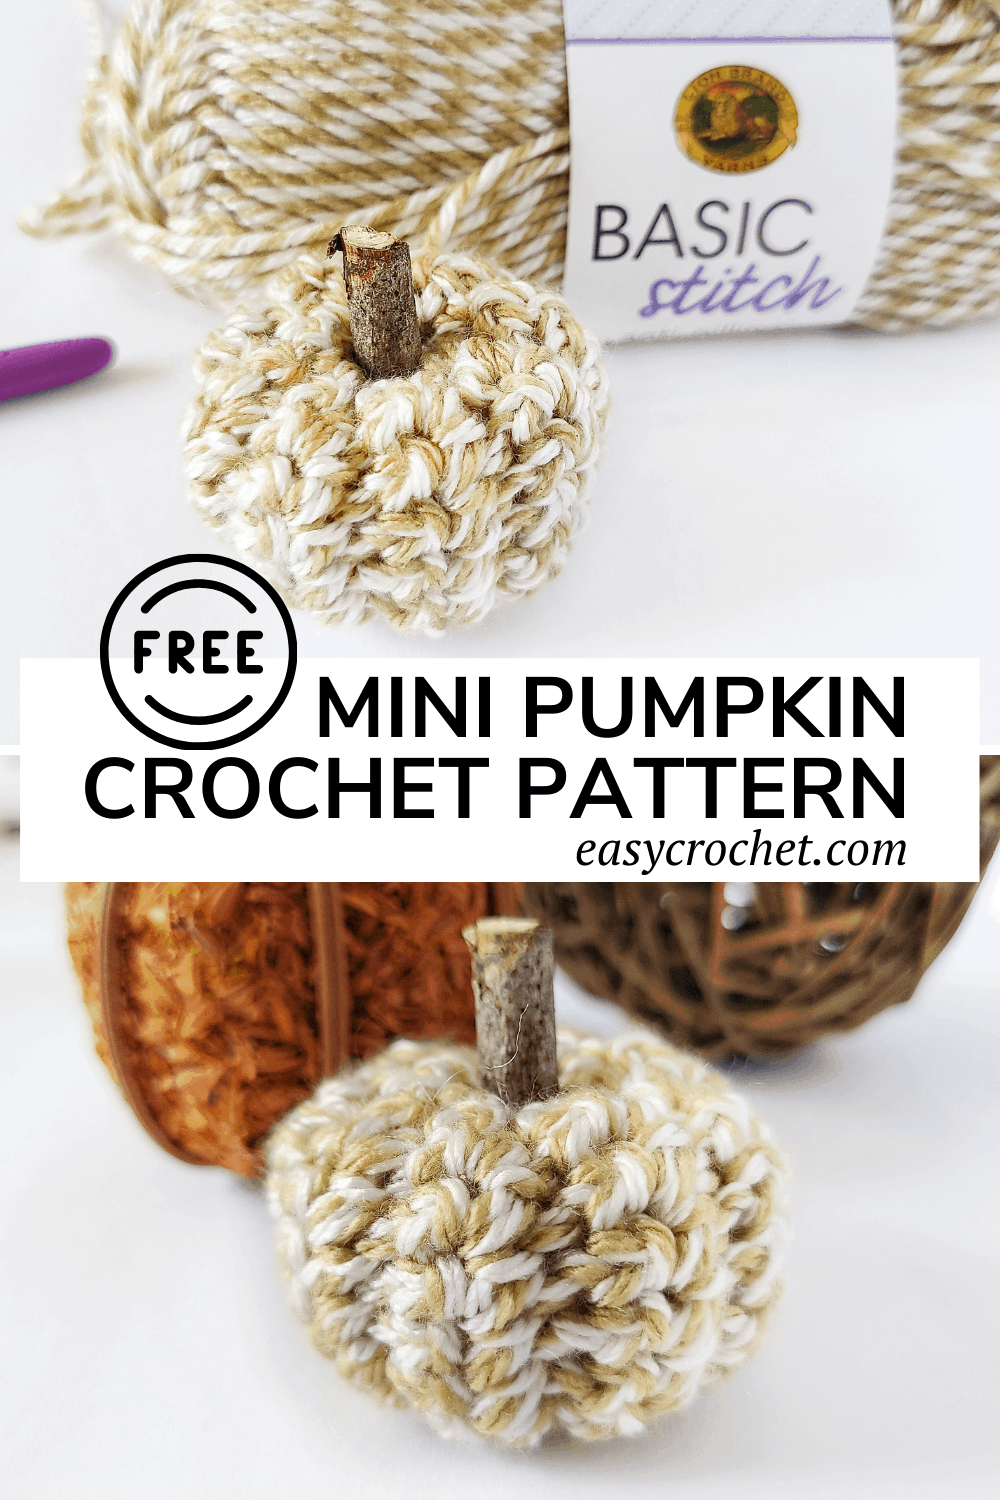 Crochet Mini Pumpkin Pattern